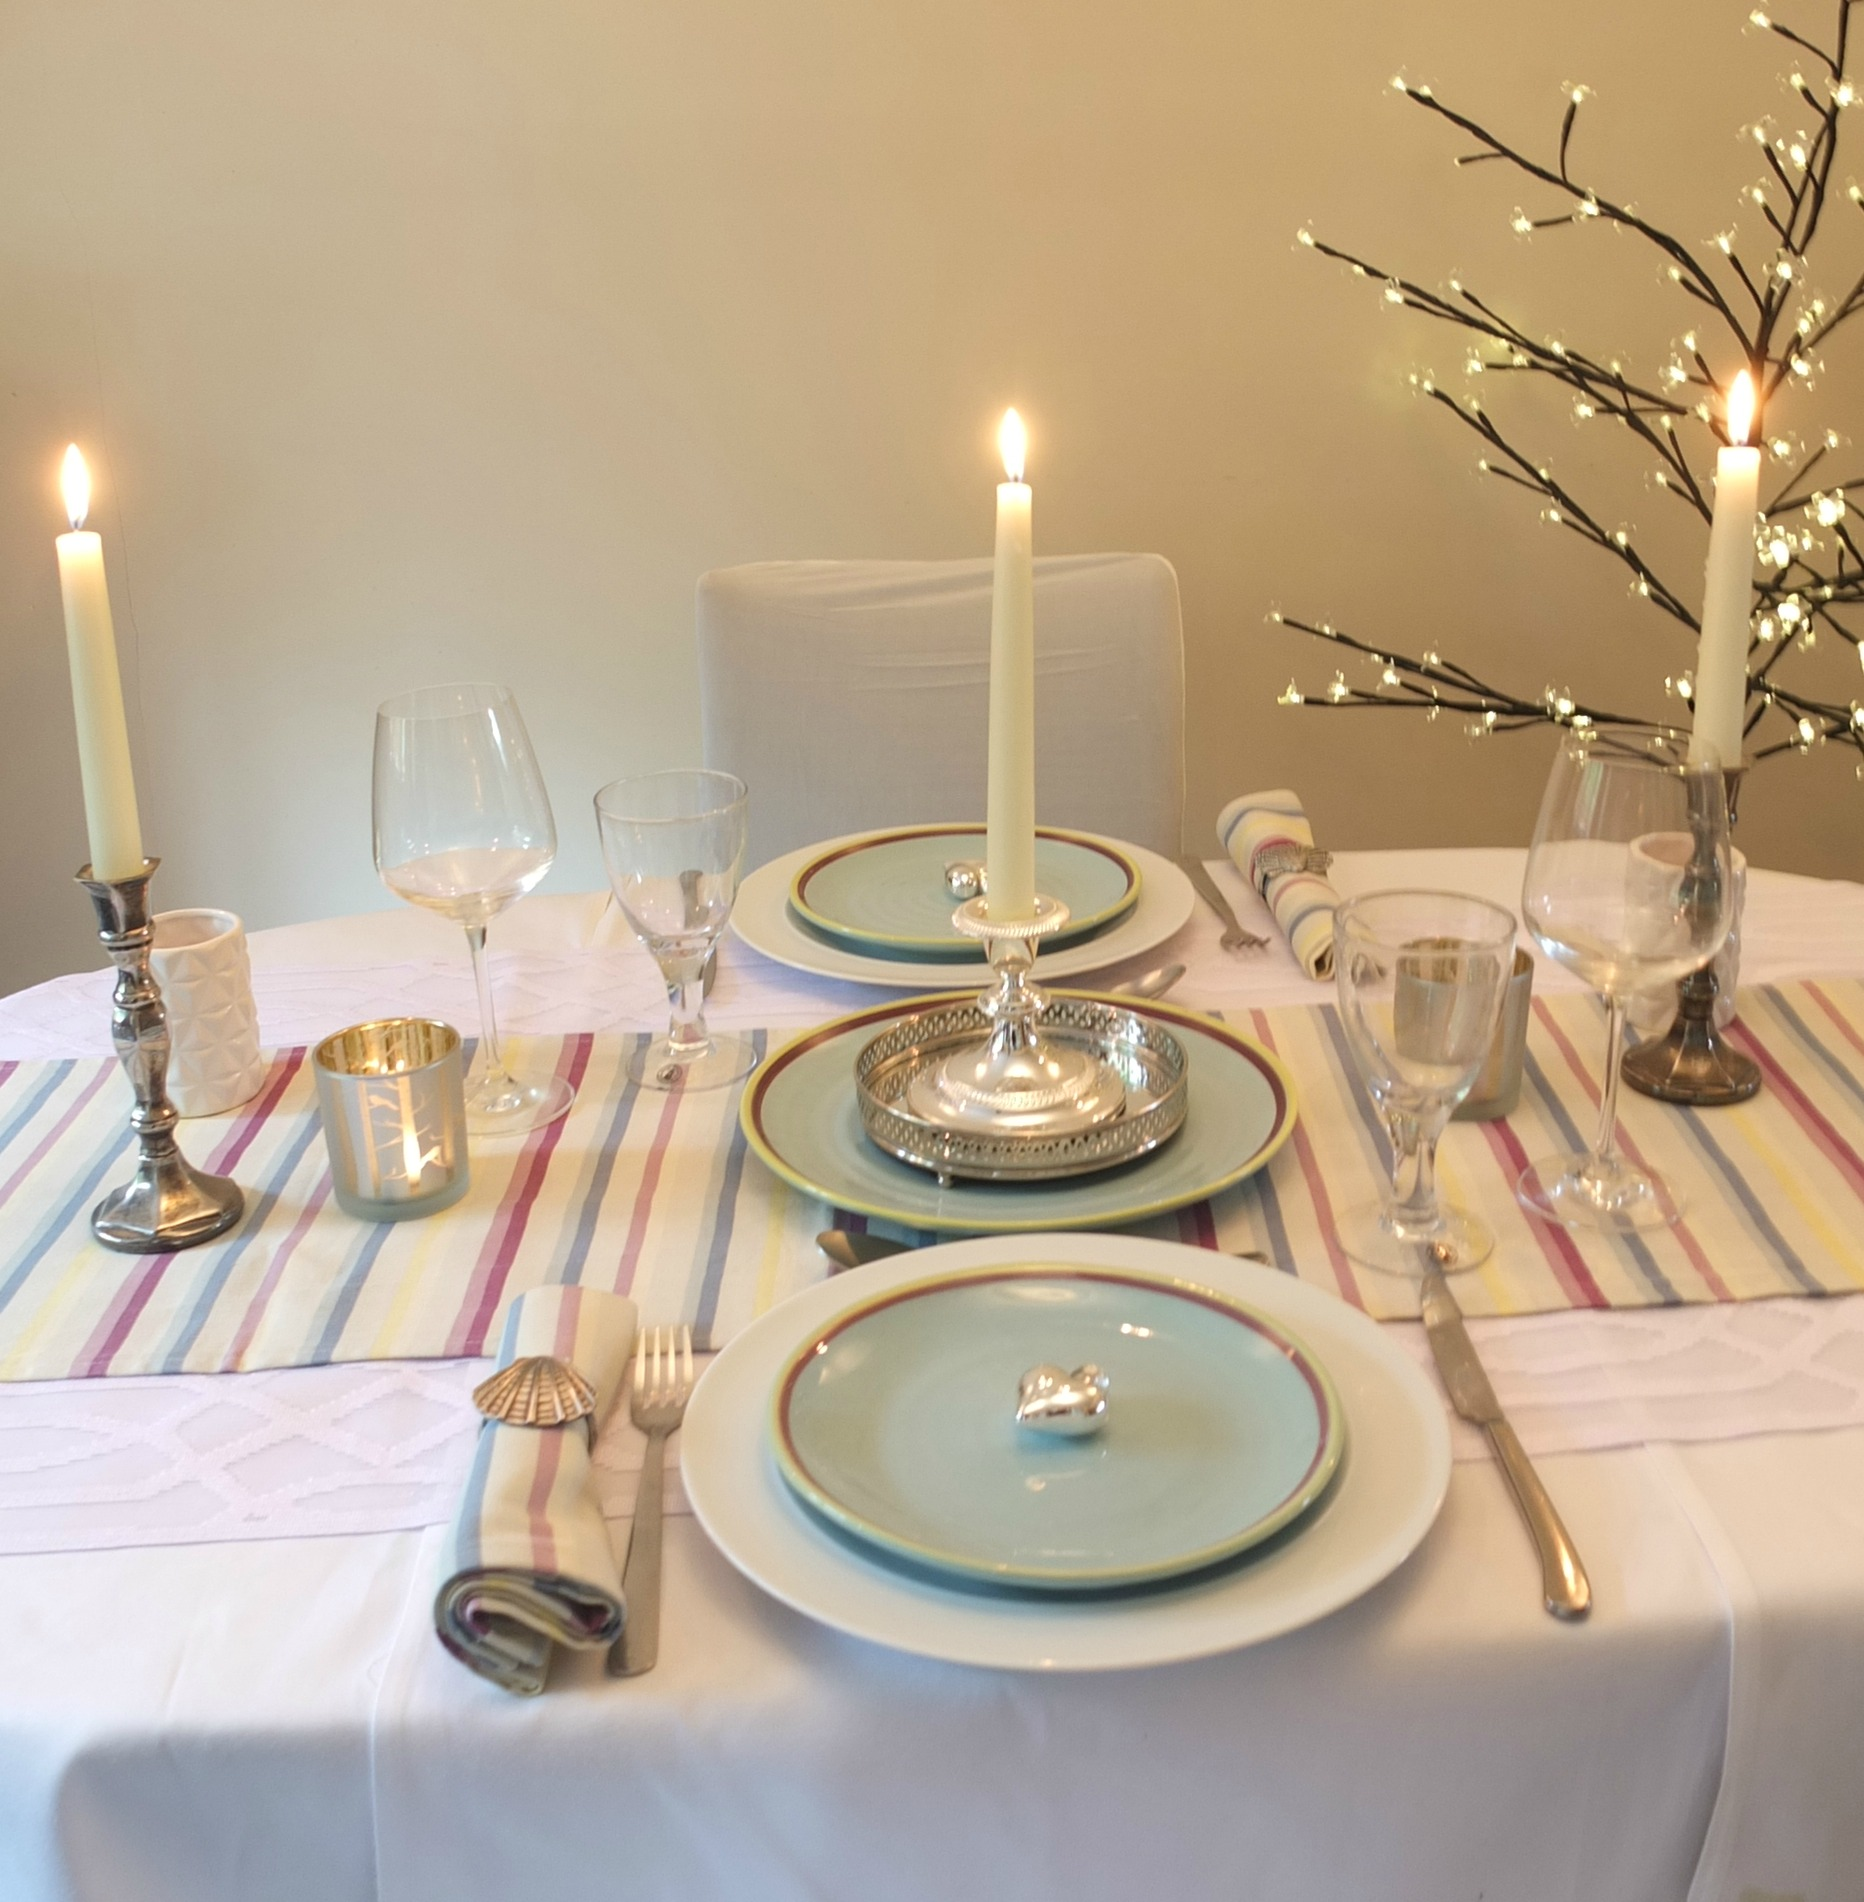 How to set a romantic dinner table for two -  Romantic Dinner For Two Table Setting Using Duckydora Amalfi Range Romantic Dinner Table How